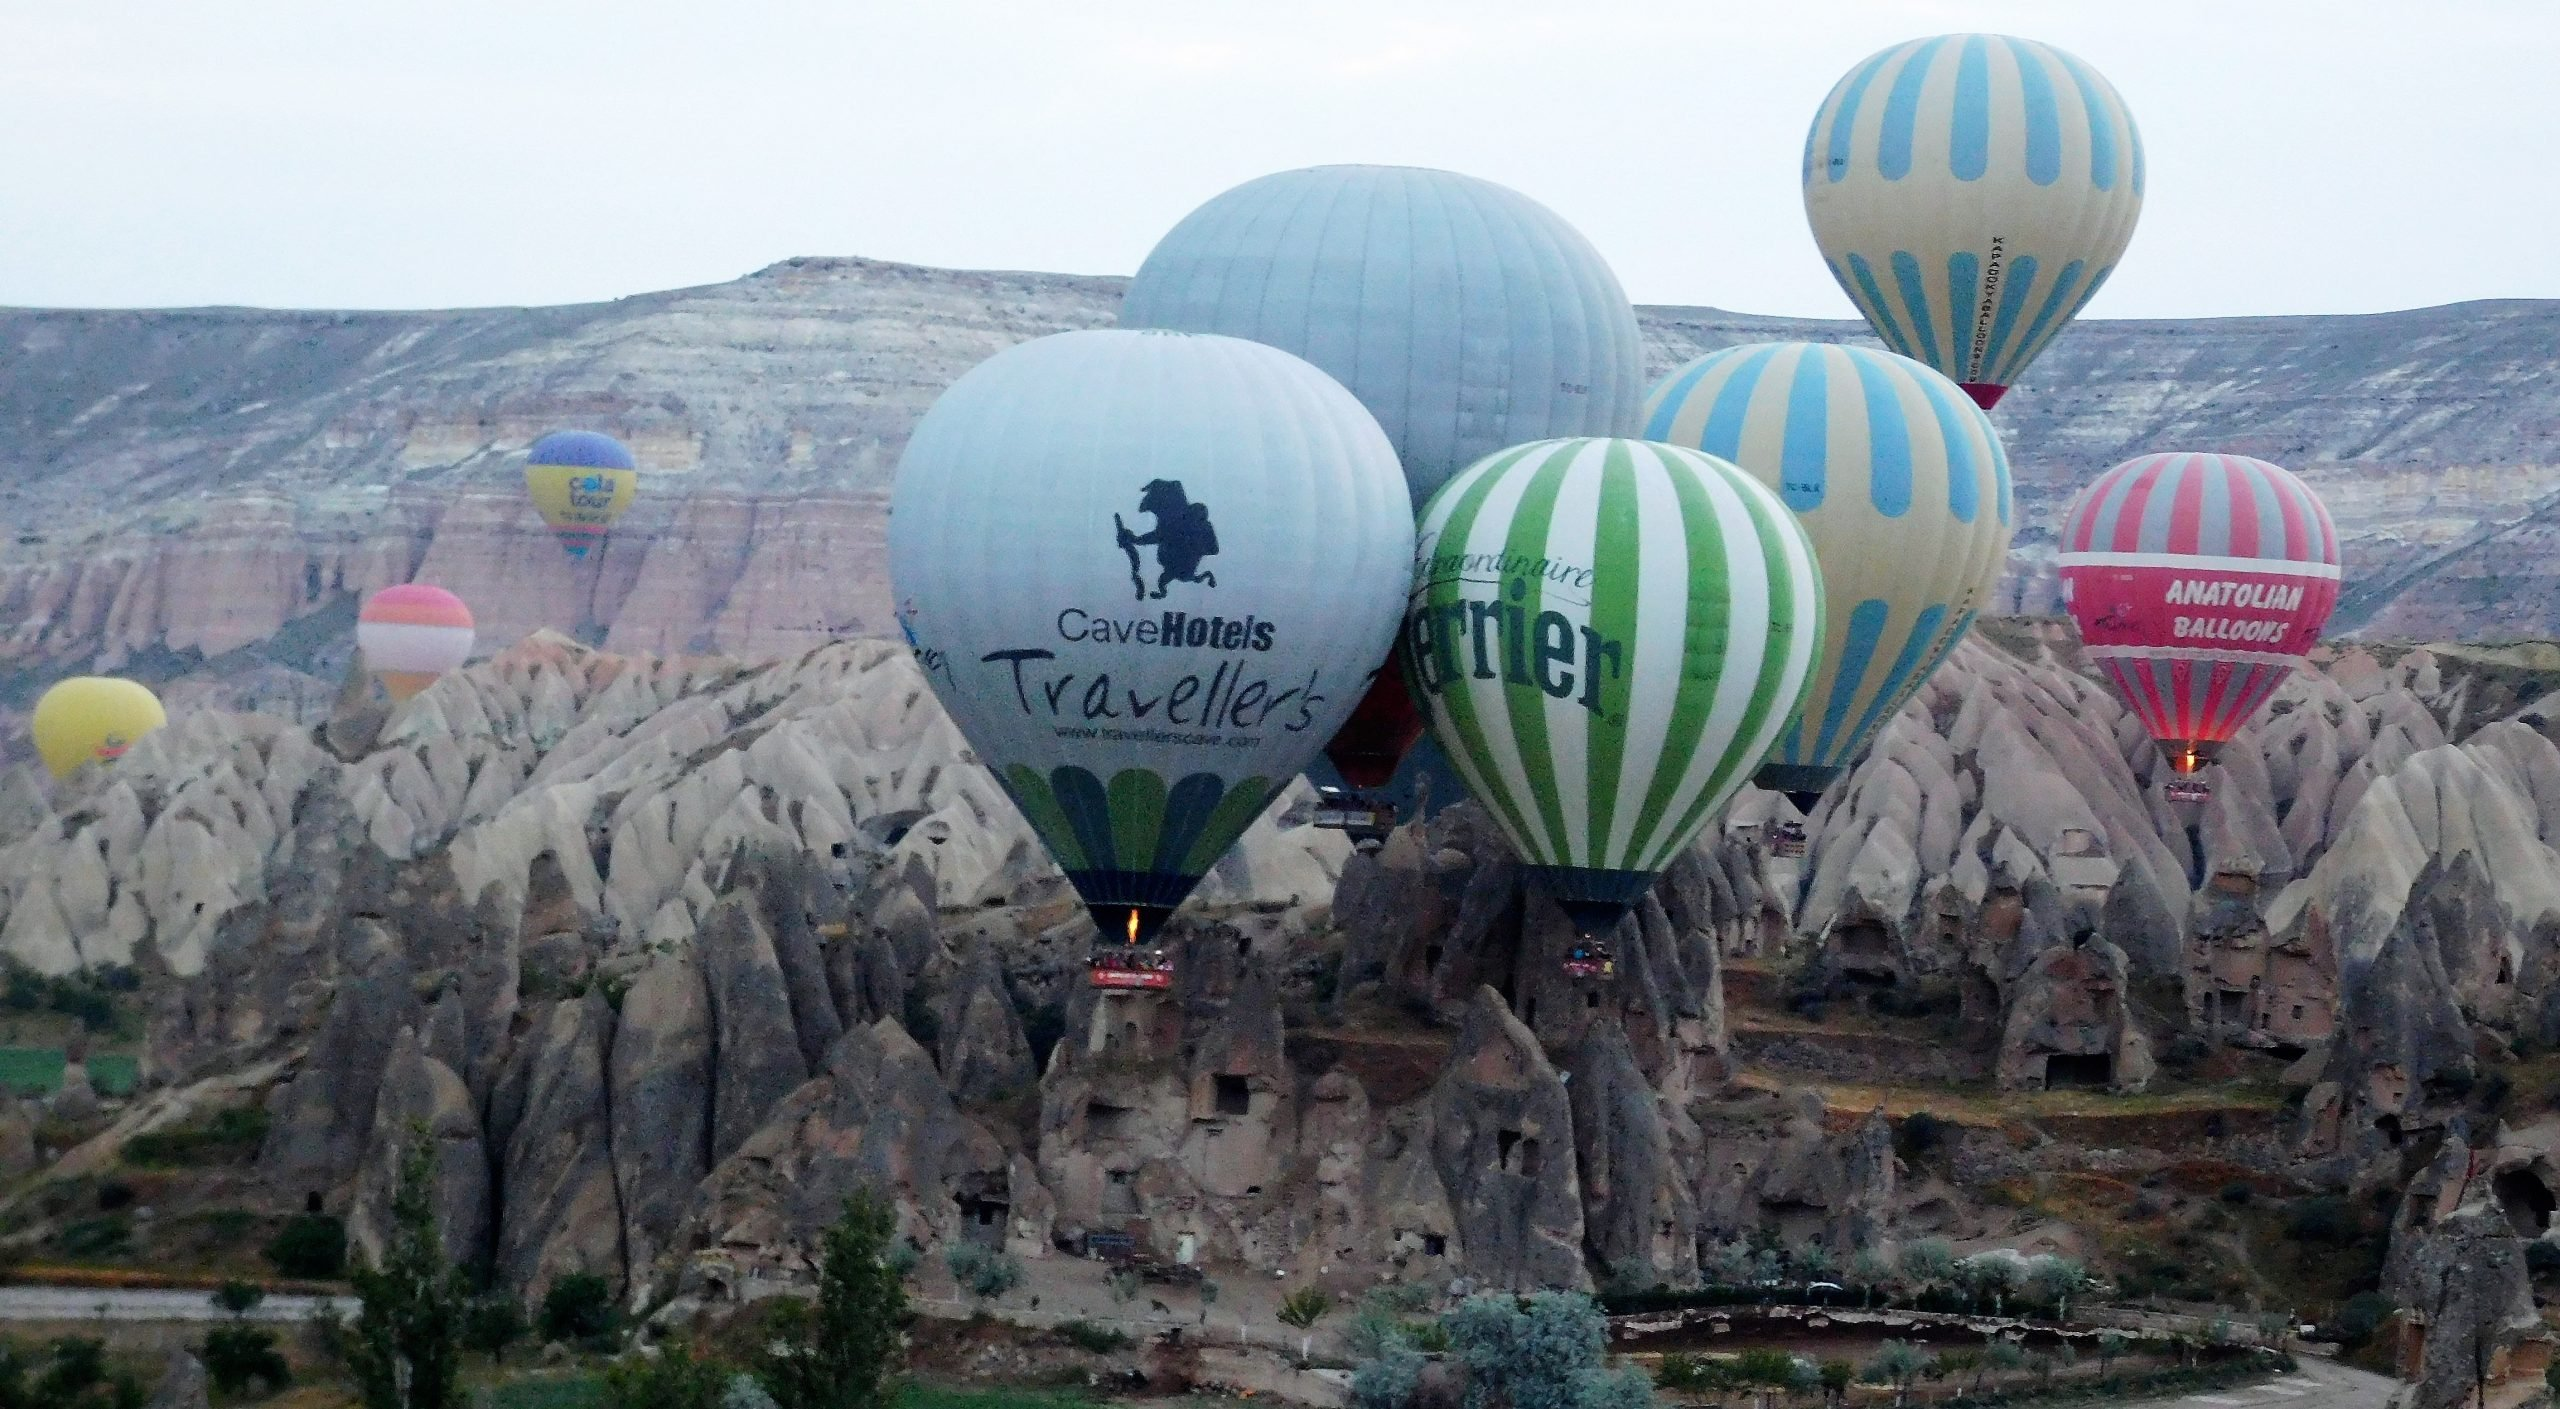 Hot Air Ballooning in Cappadocia Turkey